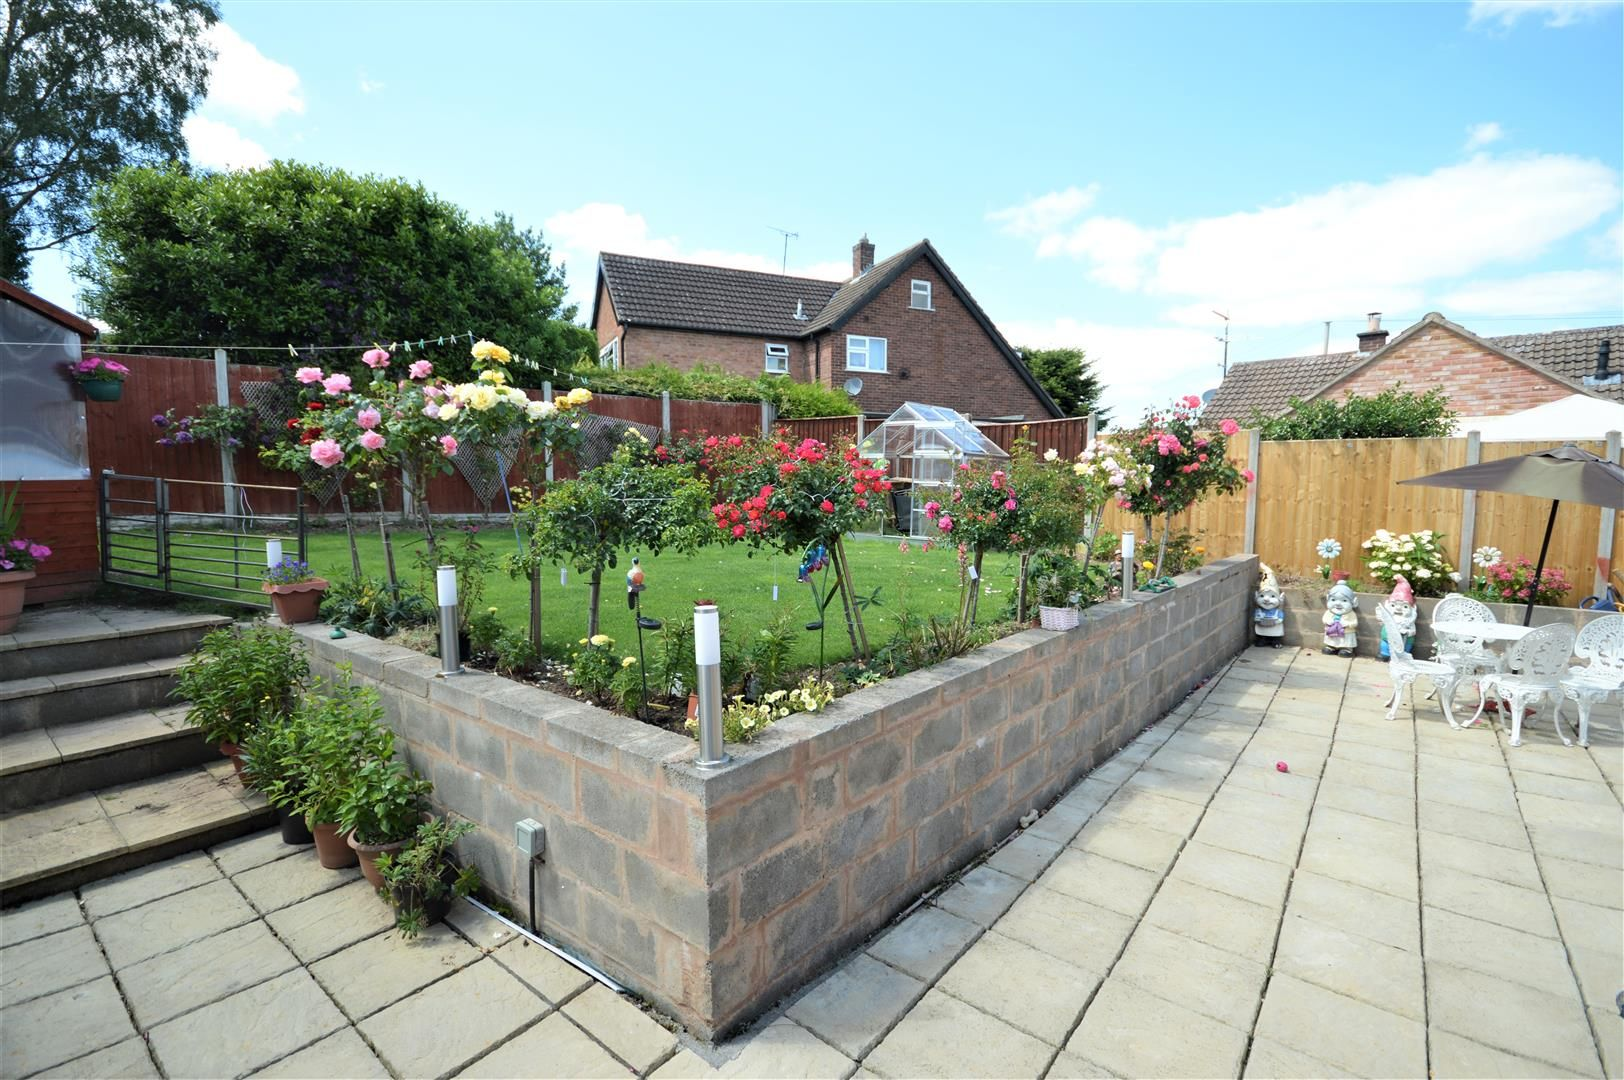 3 bed detached-bungalow for sale in Leominster 9